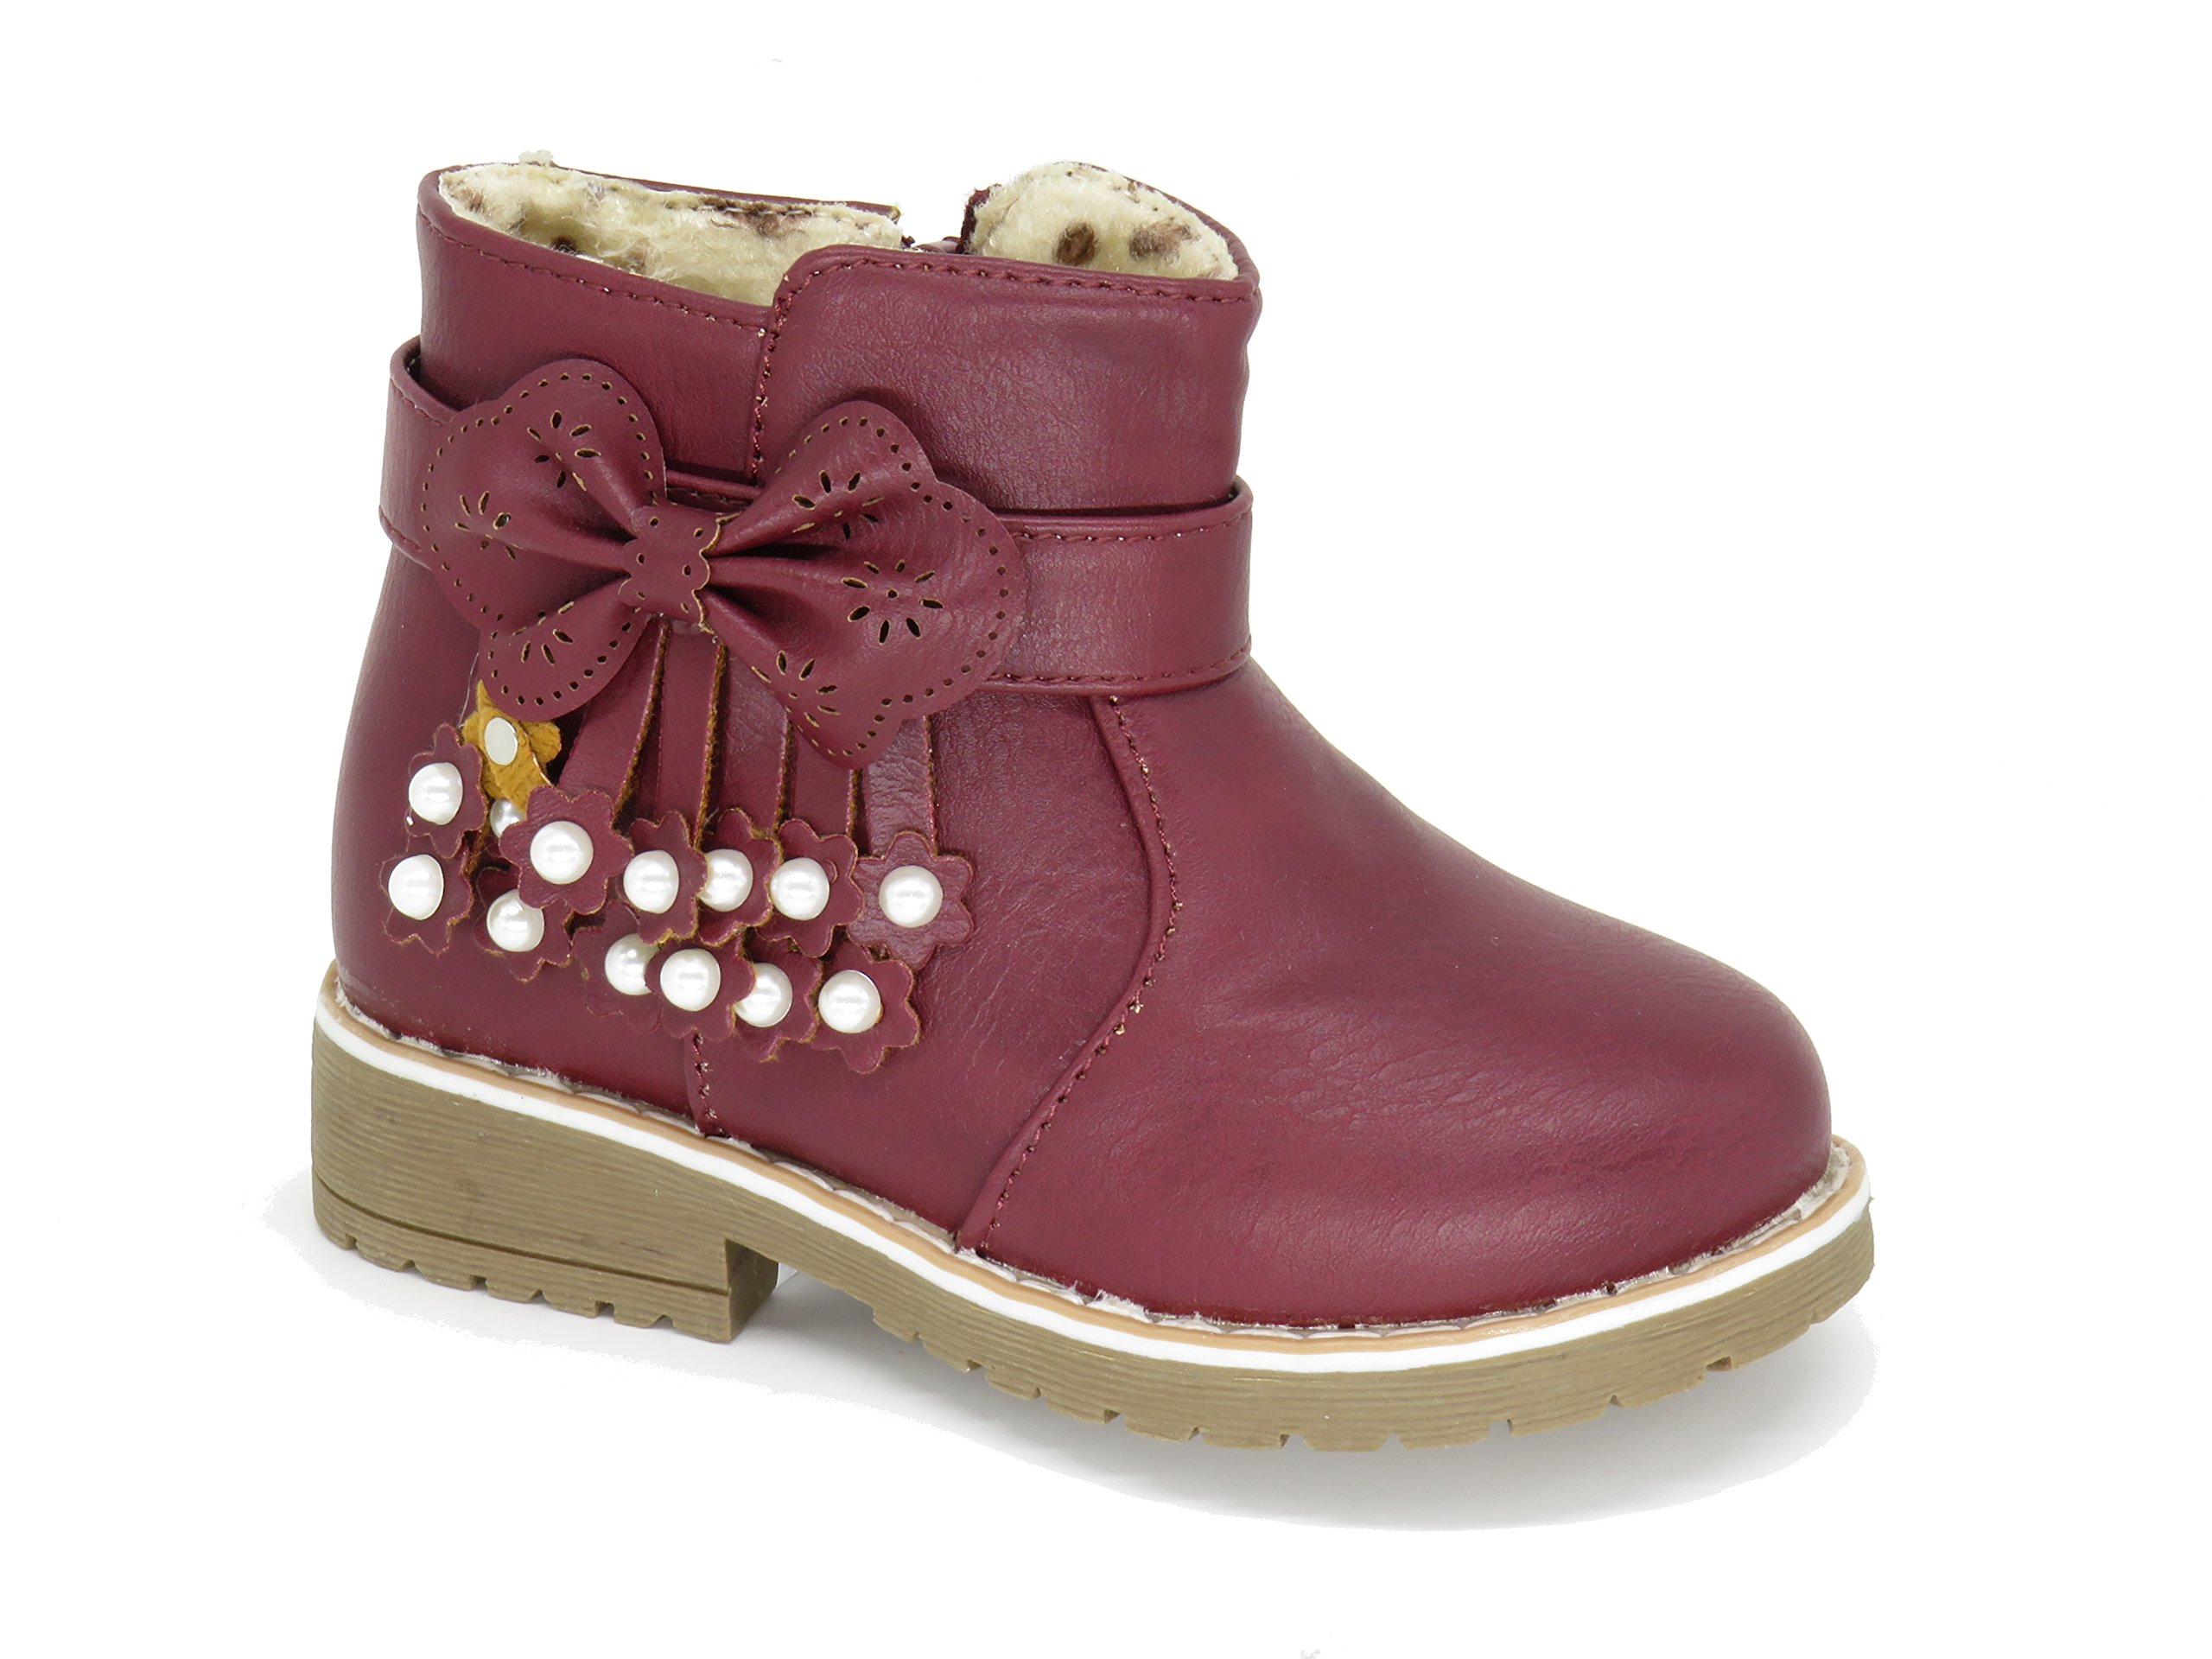 Burgundy Toddler Shoes: Amazon.com